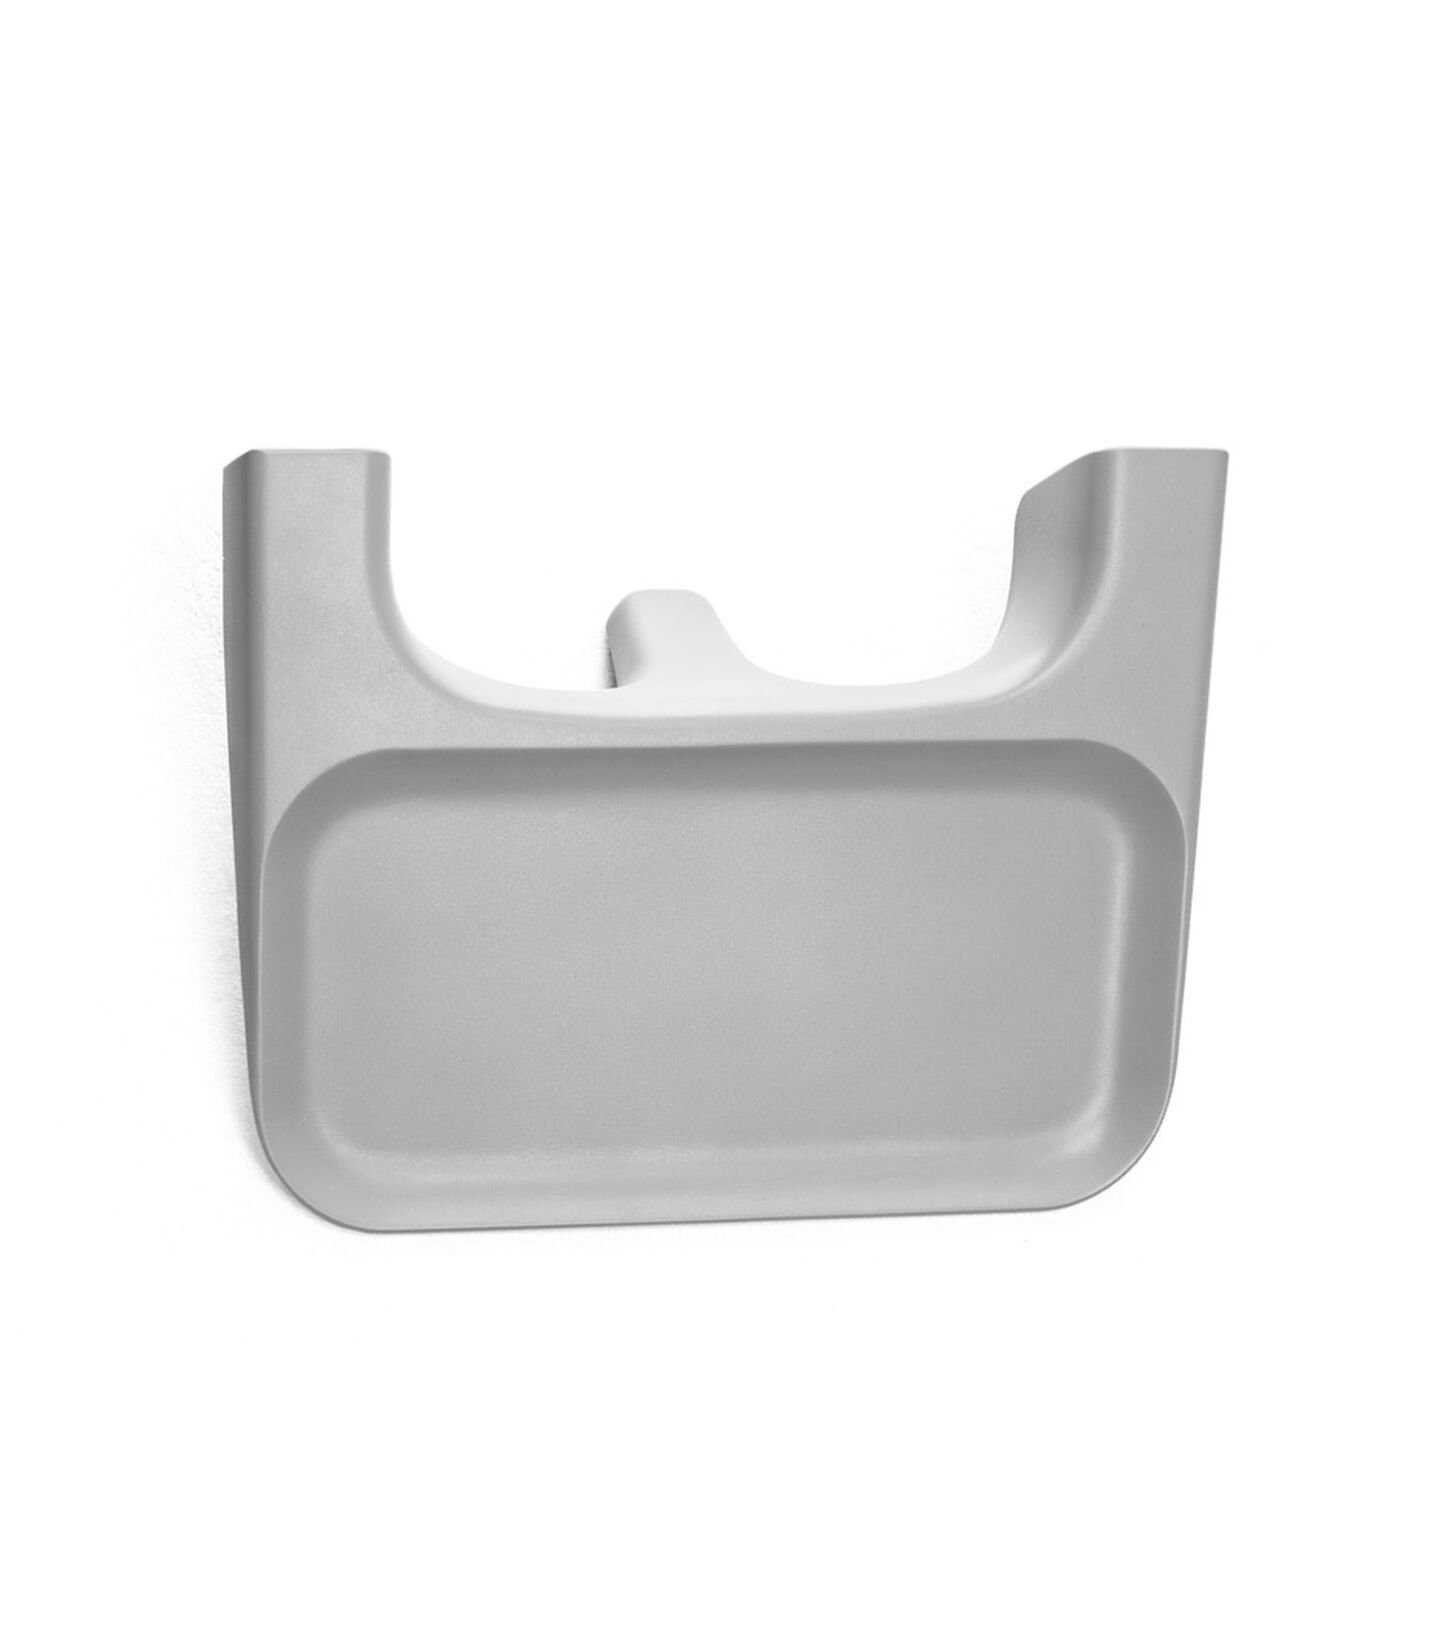 Stokke® Clikk™ Tray Cloud Grey, Cloud Grey, mainview view 2